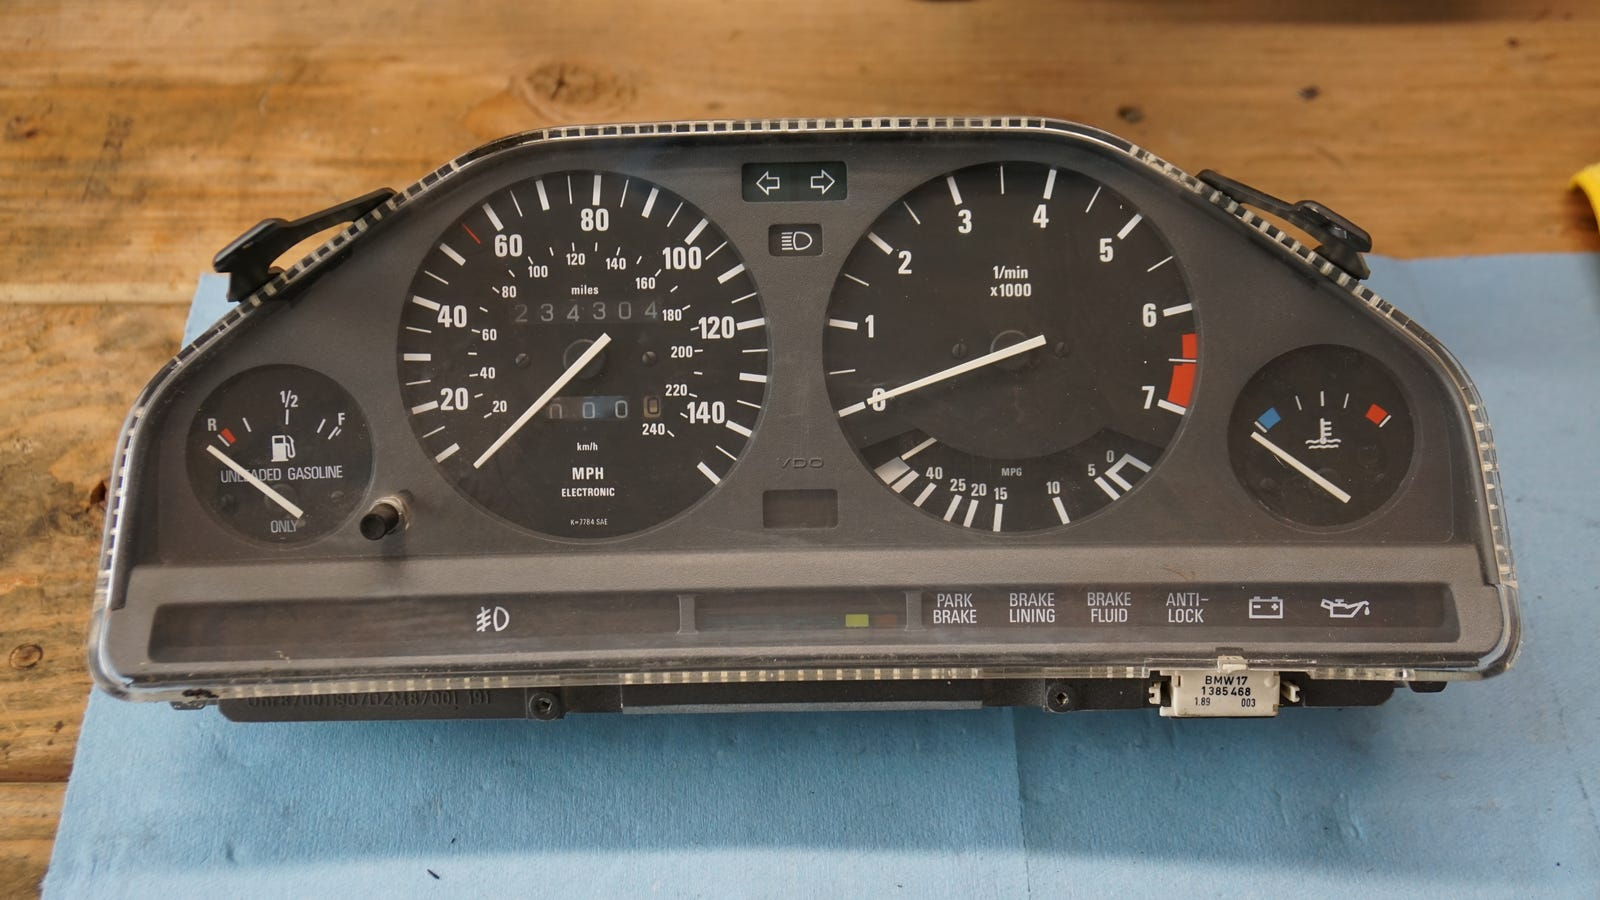 Instrument cluster placed on the work bench in a futile attempt to revive it.